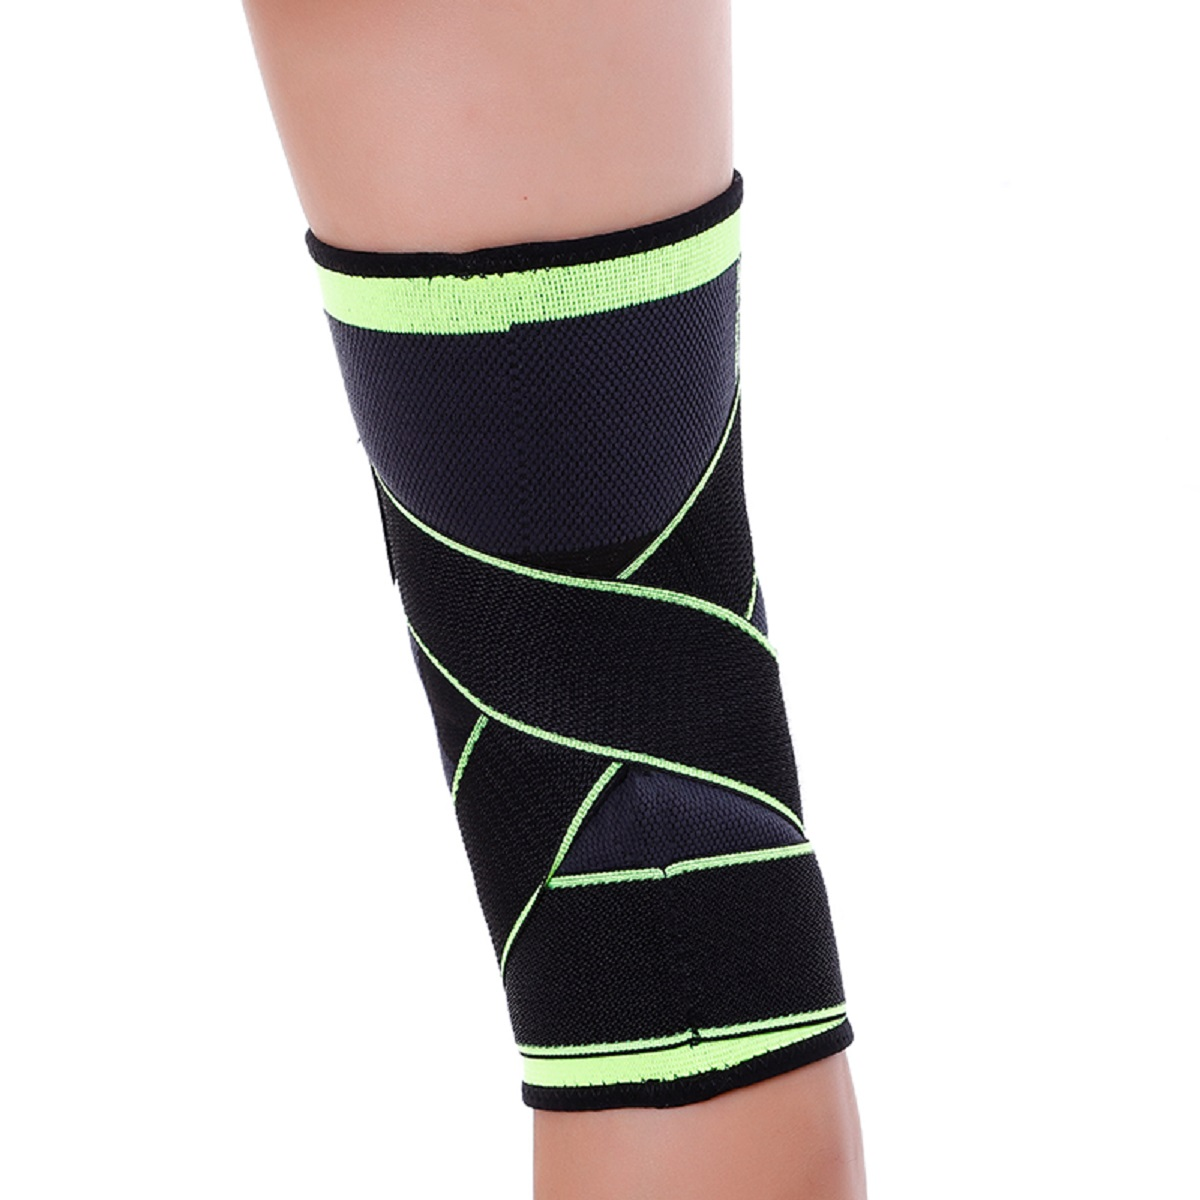 USA-3D-Weaving-Knee-Brace-Breathable-Sleeve-Support-for-Running-Jogging-Sports miniature 17